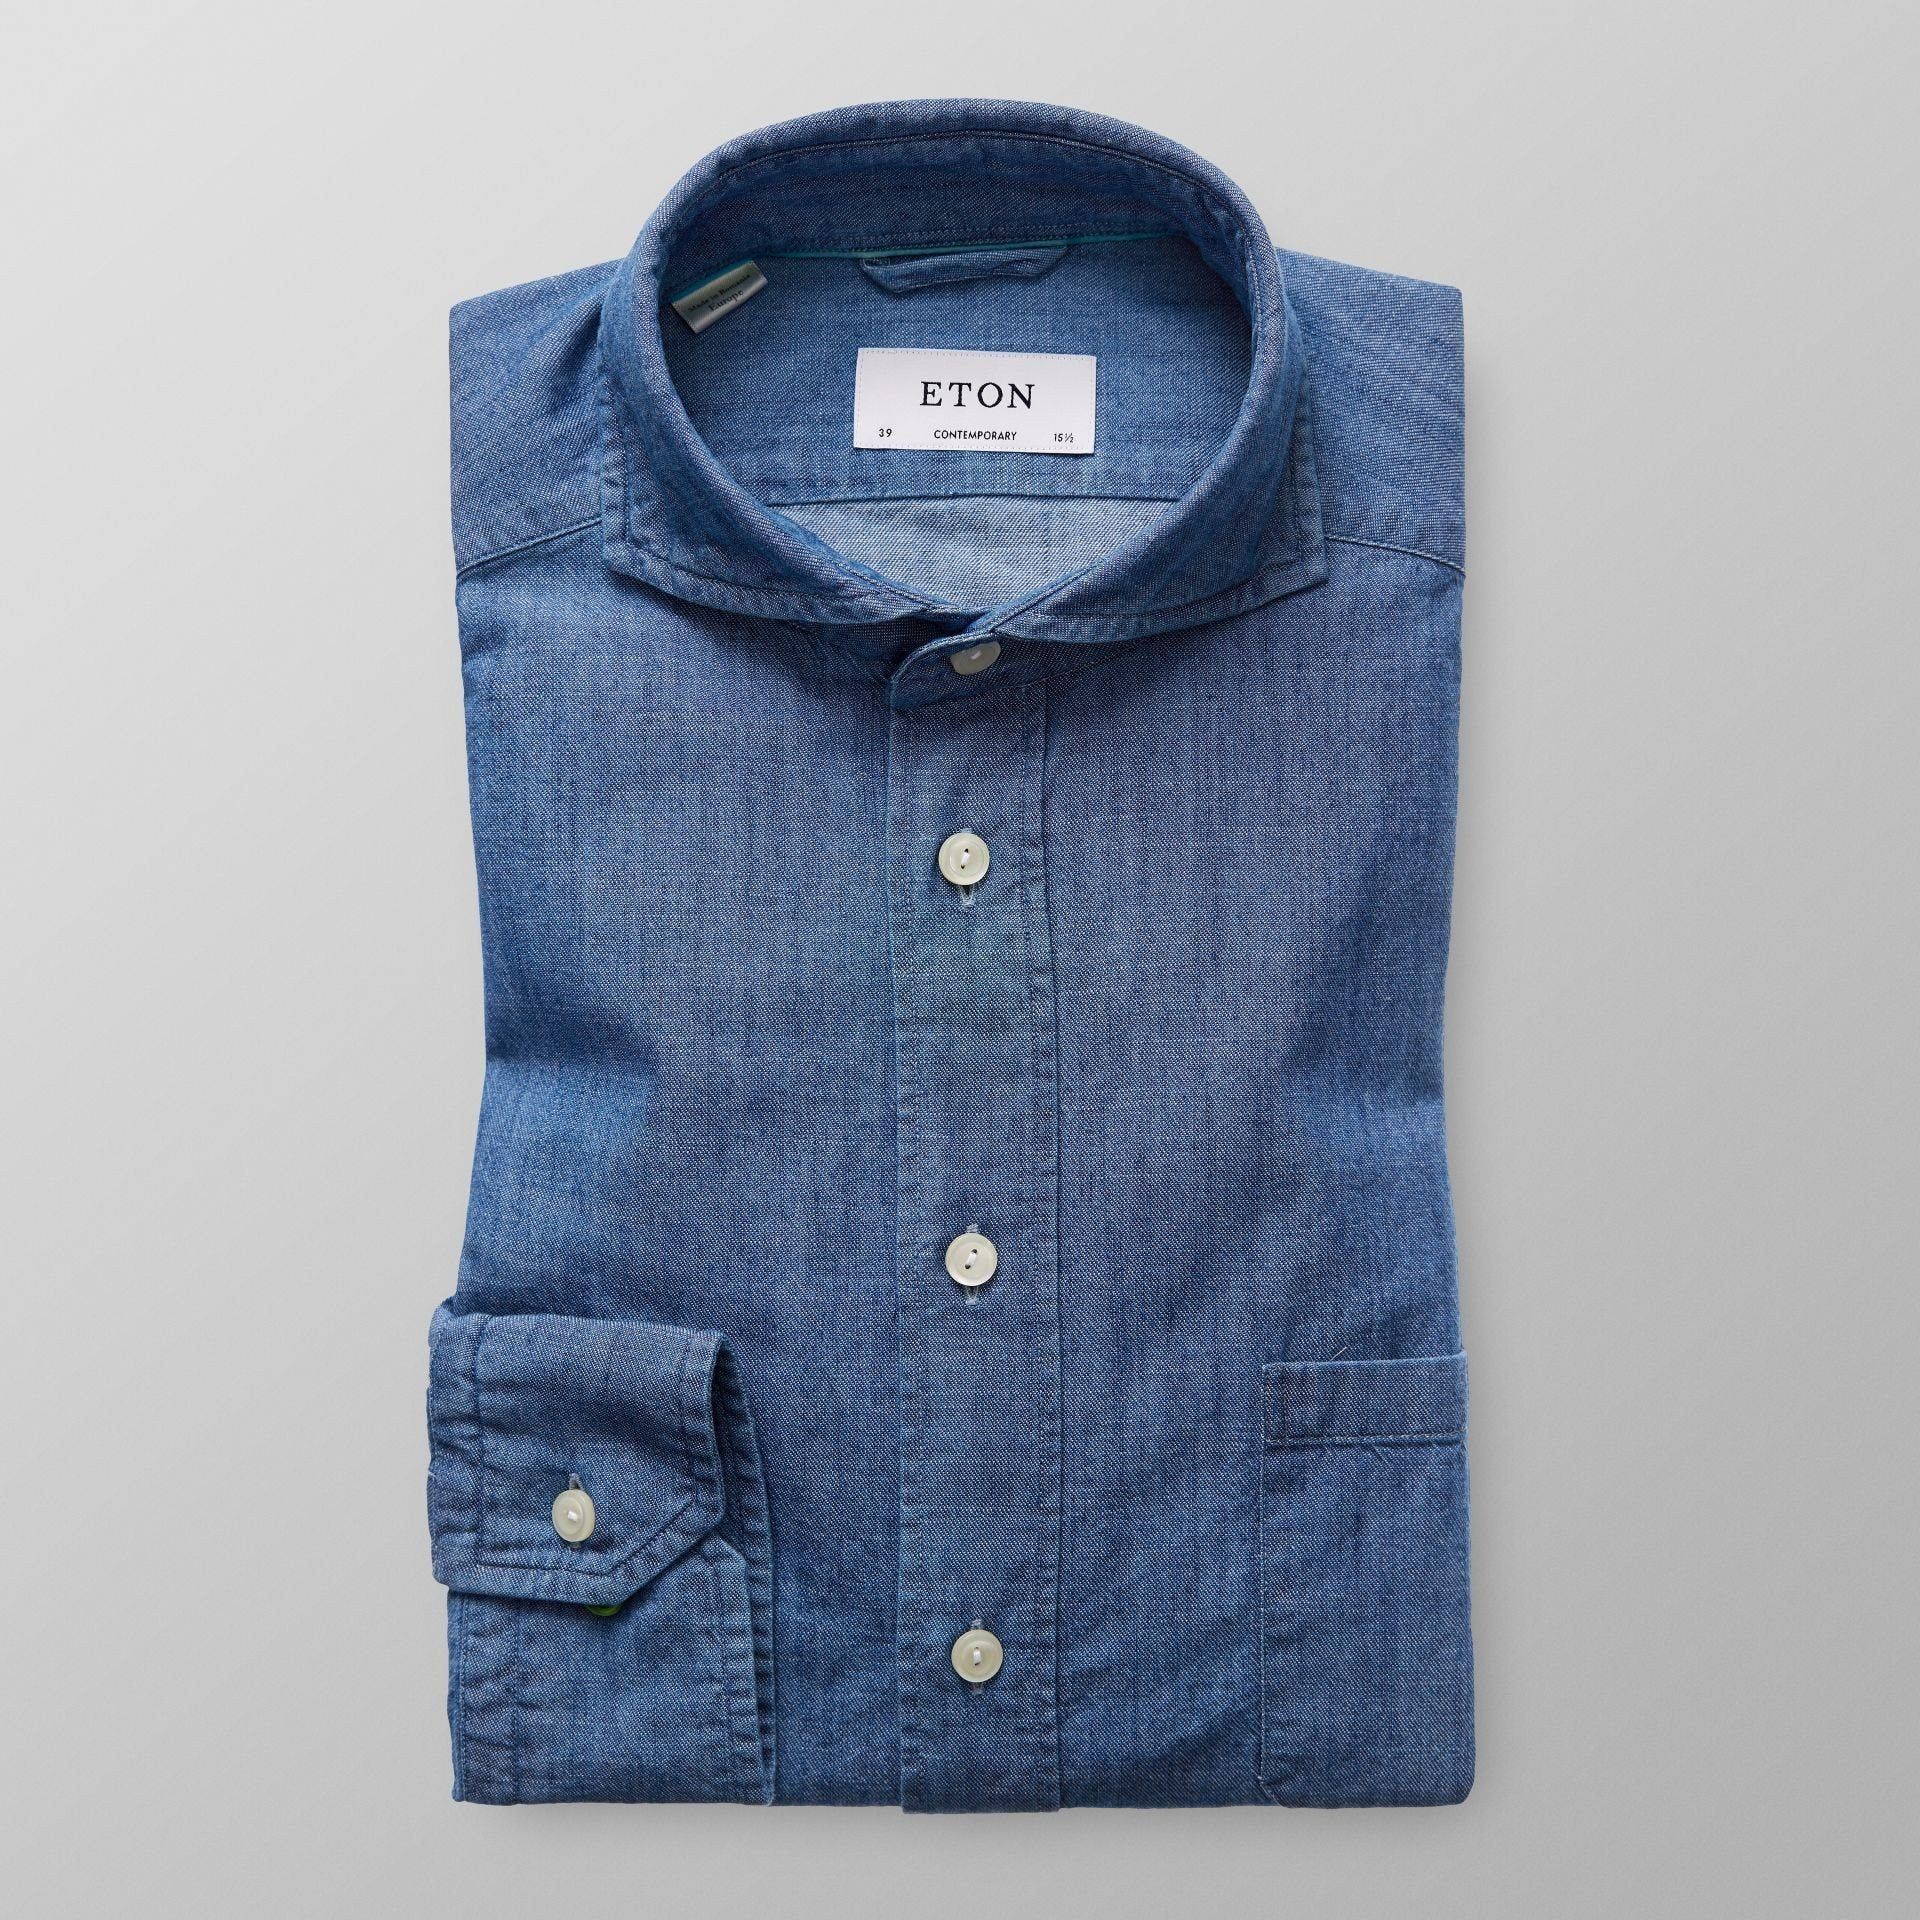 Eton denim shirt